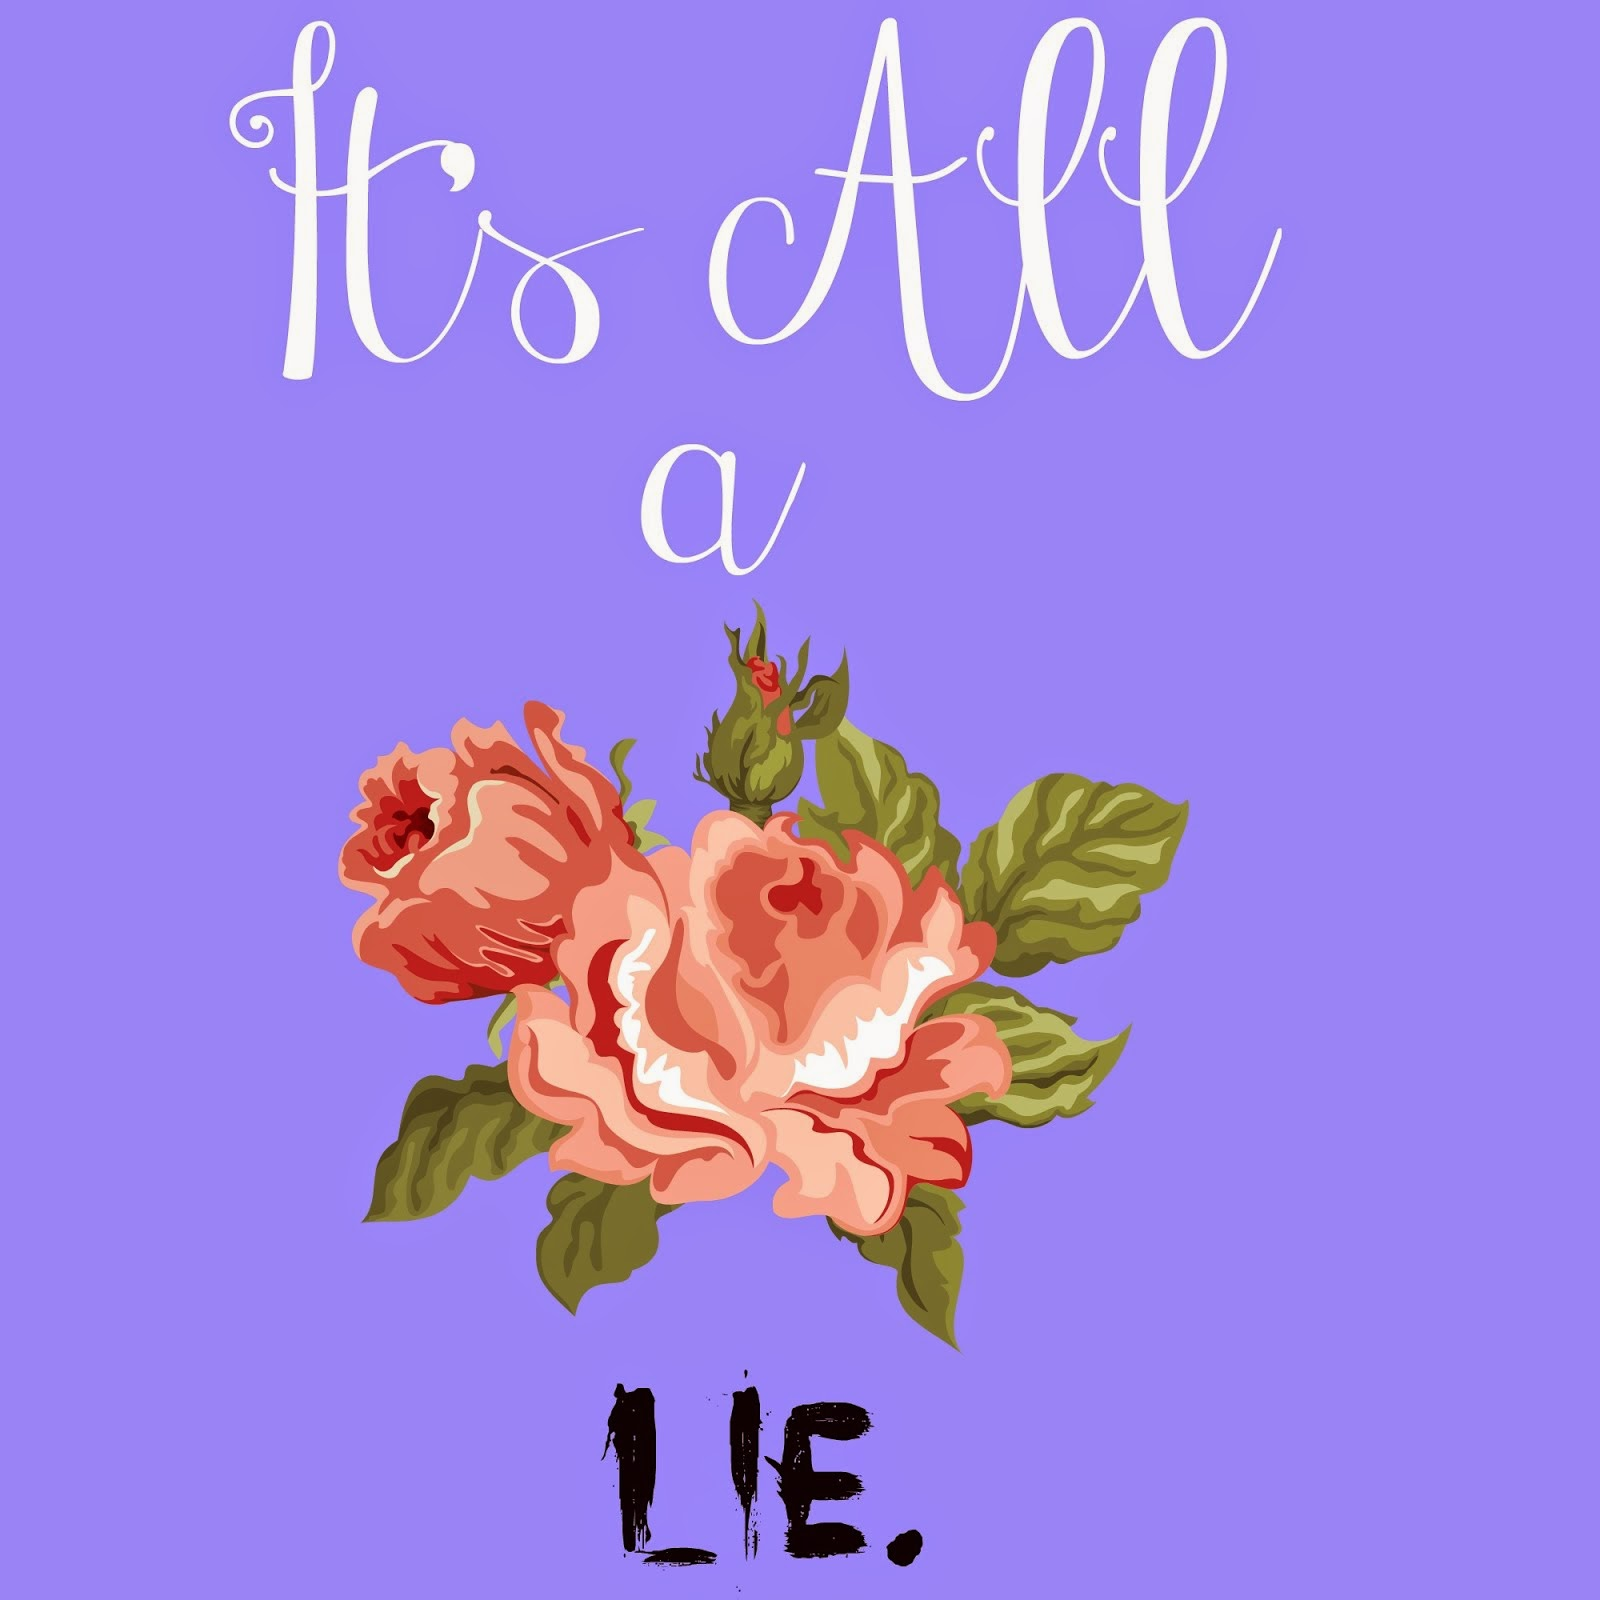 Popular Posts: It's All a Lie